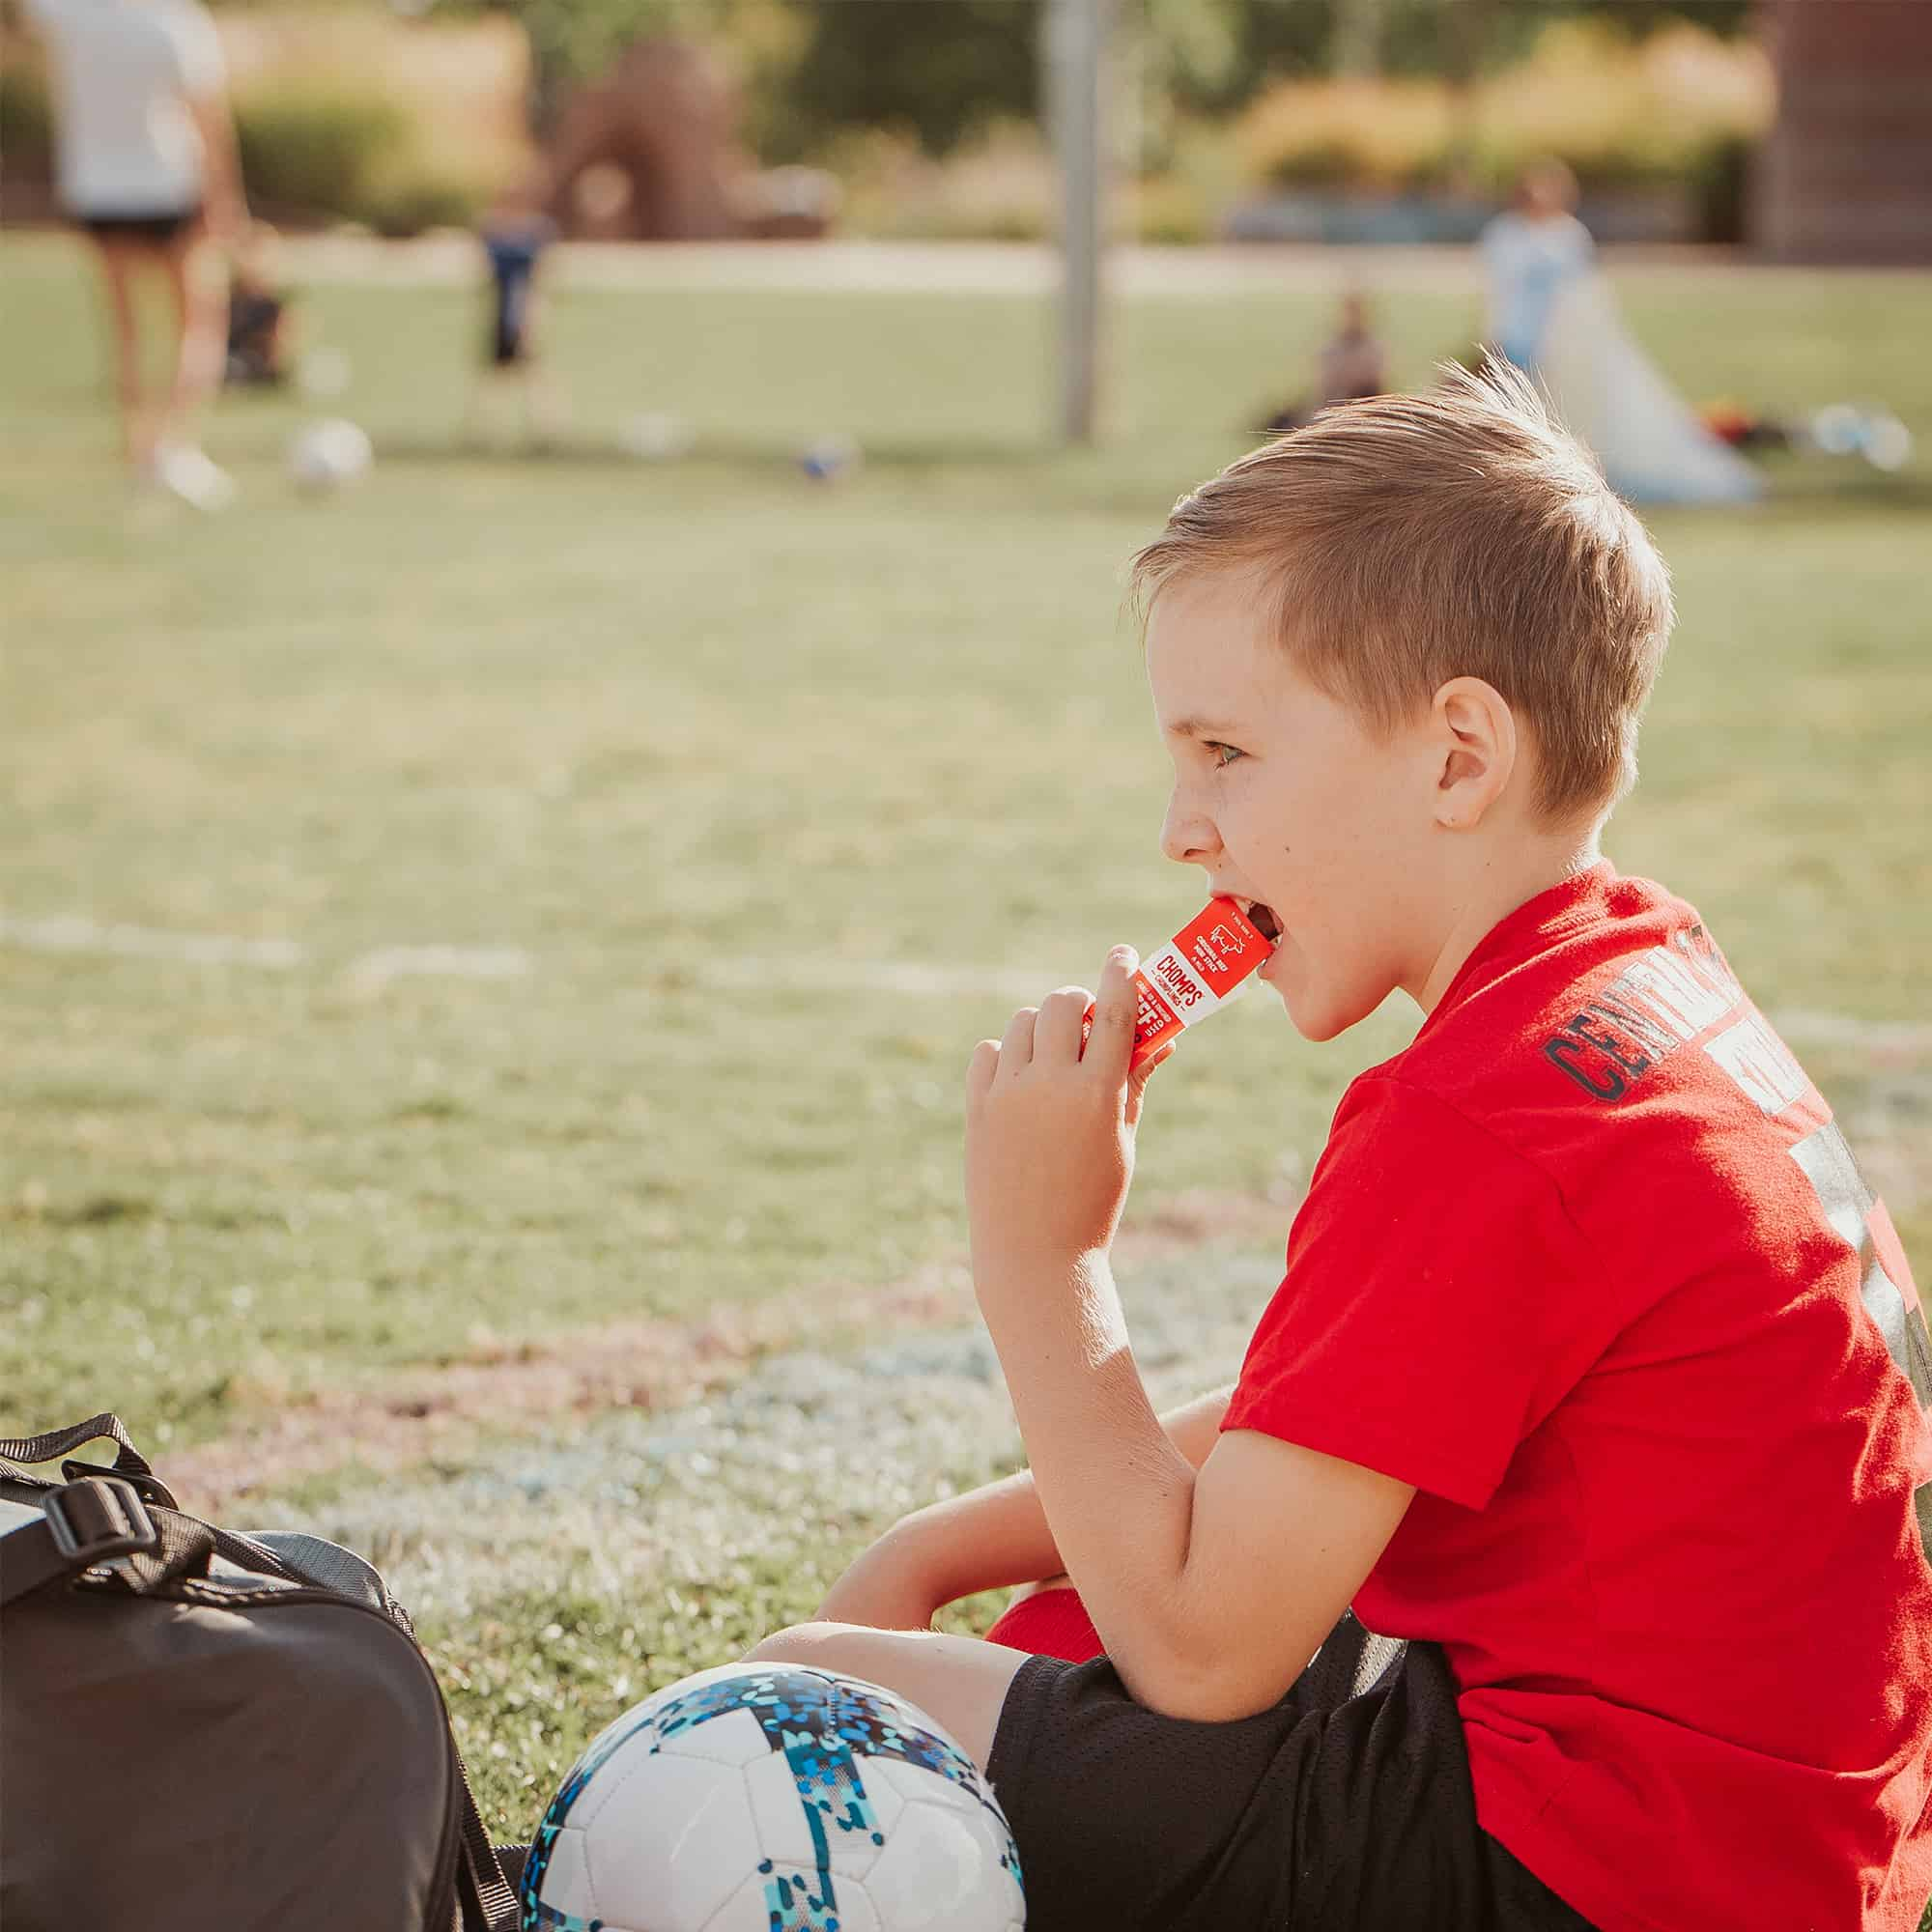 Kids Soccer with Beef Jerky Stick  by Results Imagery for CHOMPS